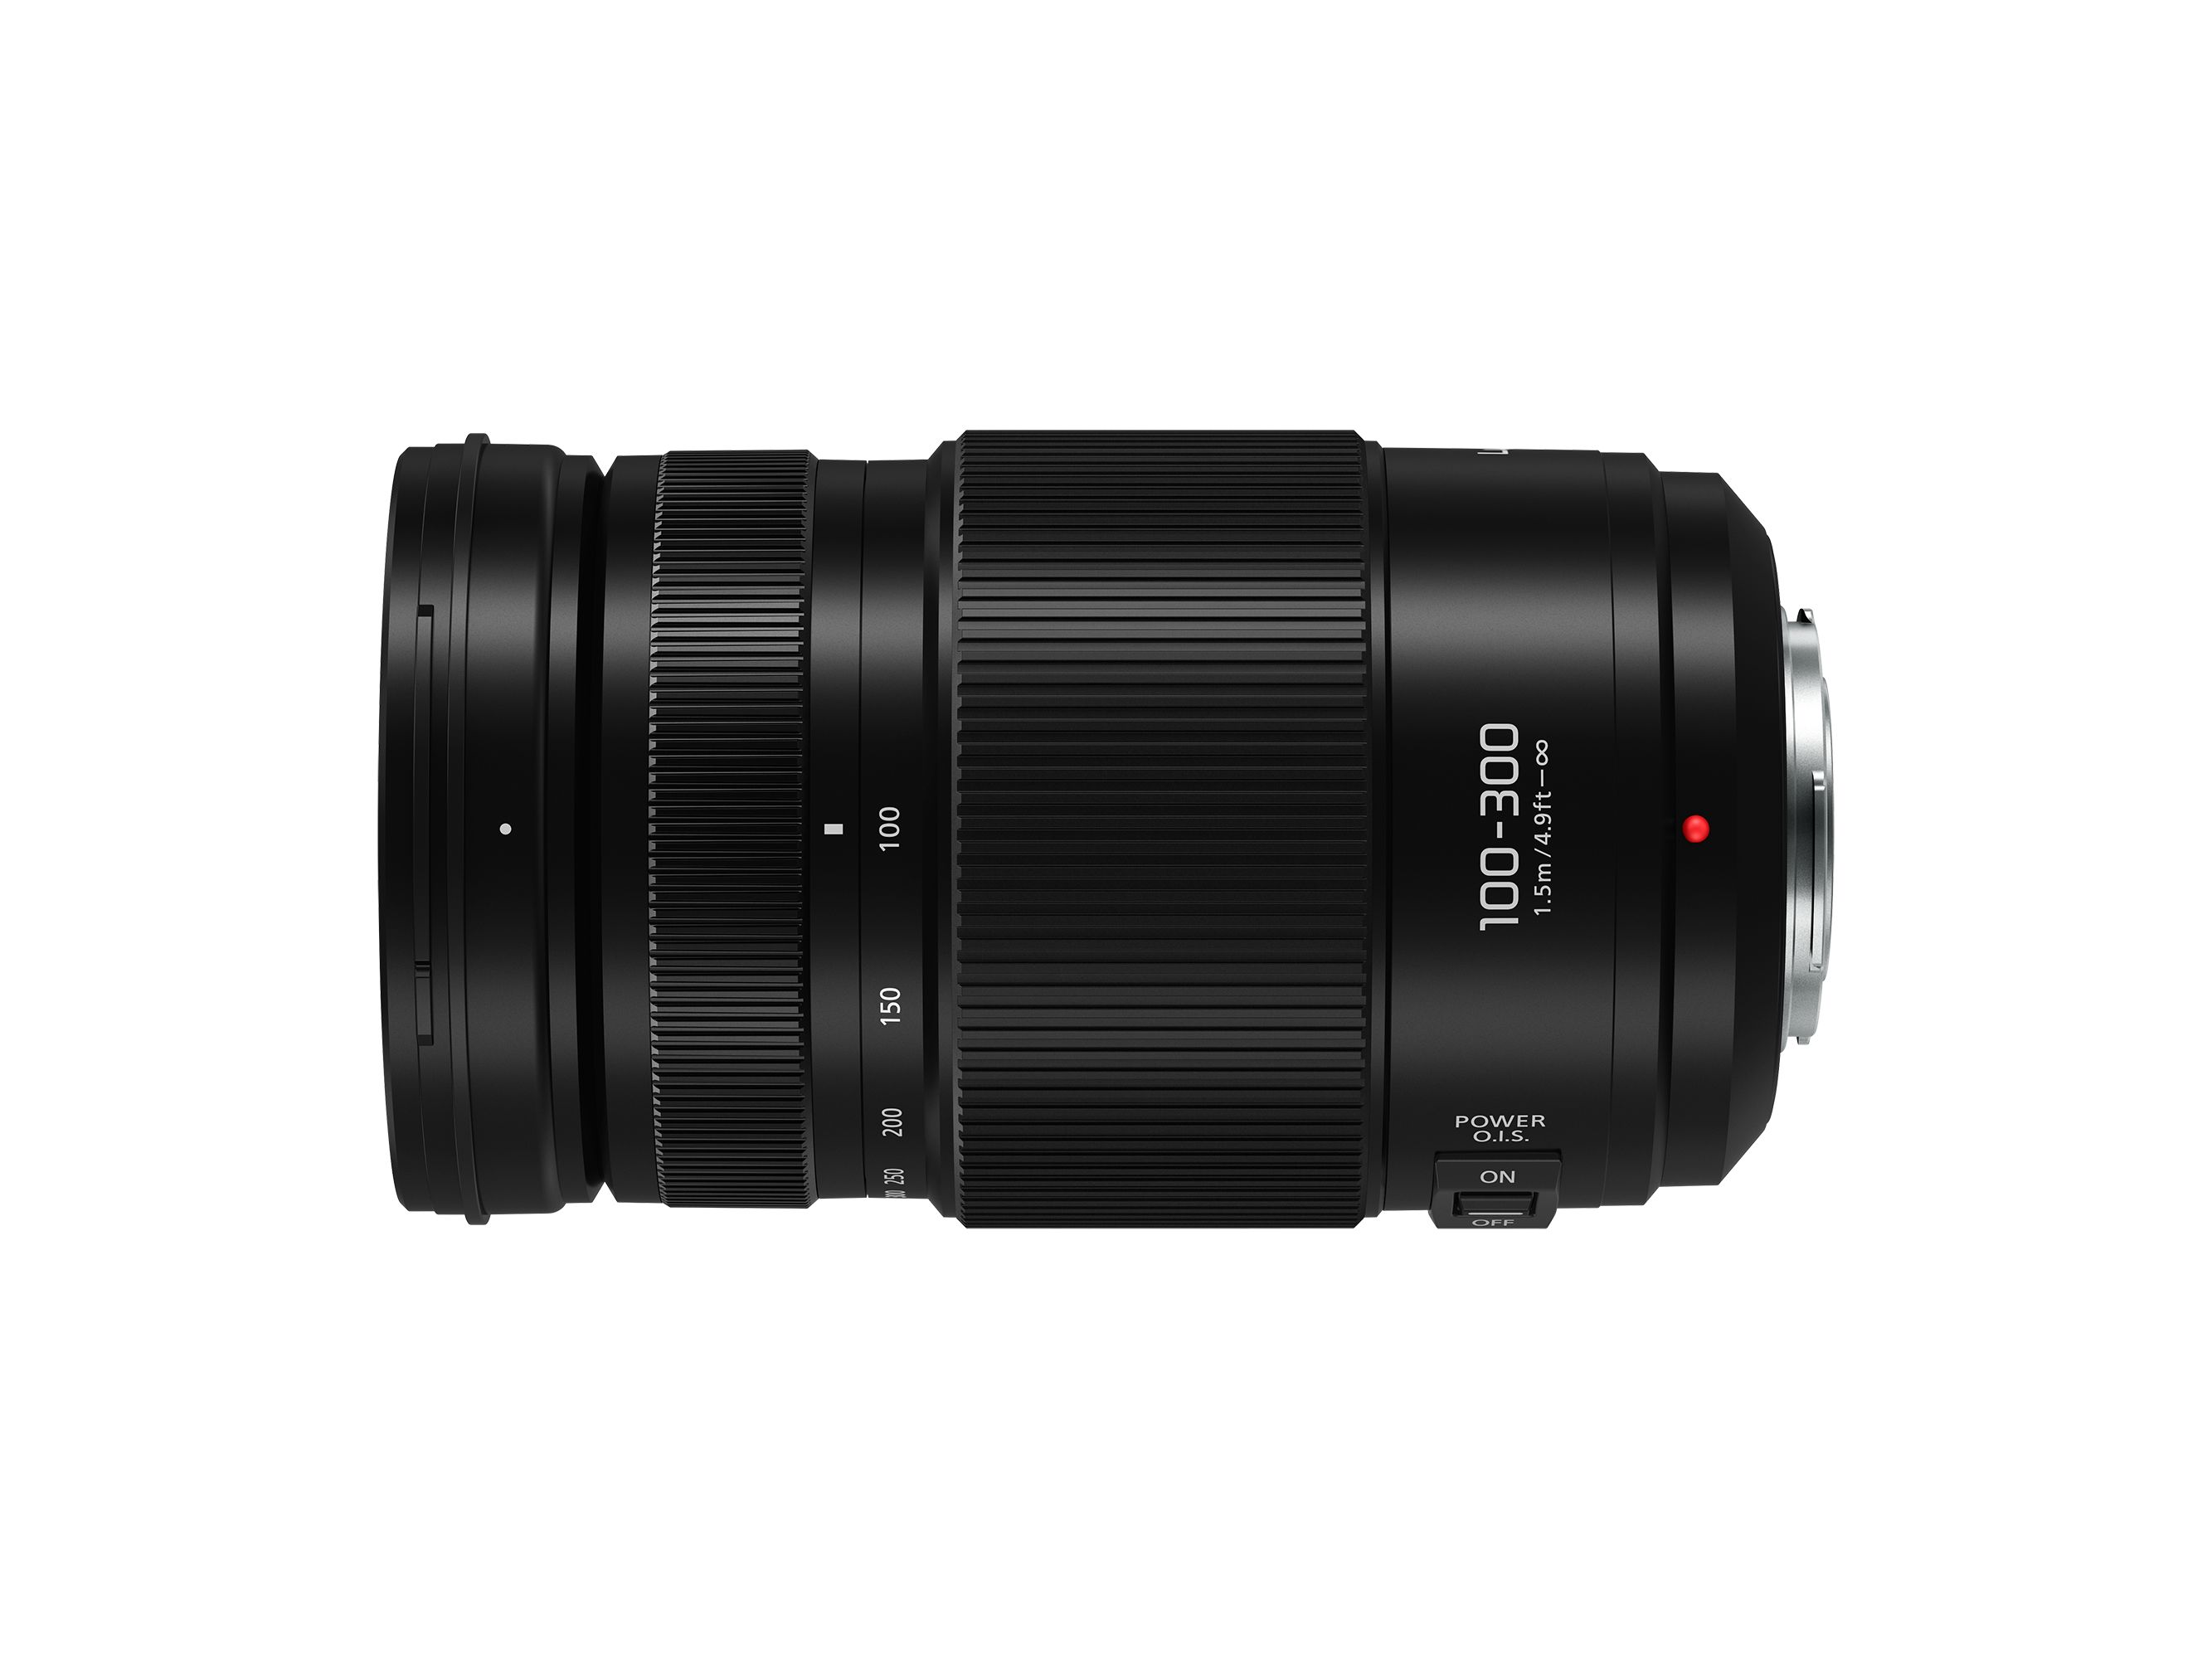 Panasonic Lumix G VARIO 100-300mm f/4,0-5,6 II Power O.I.S.